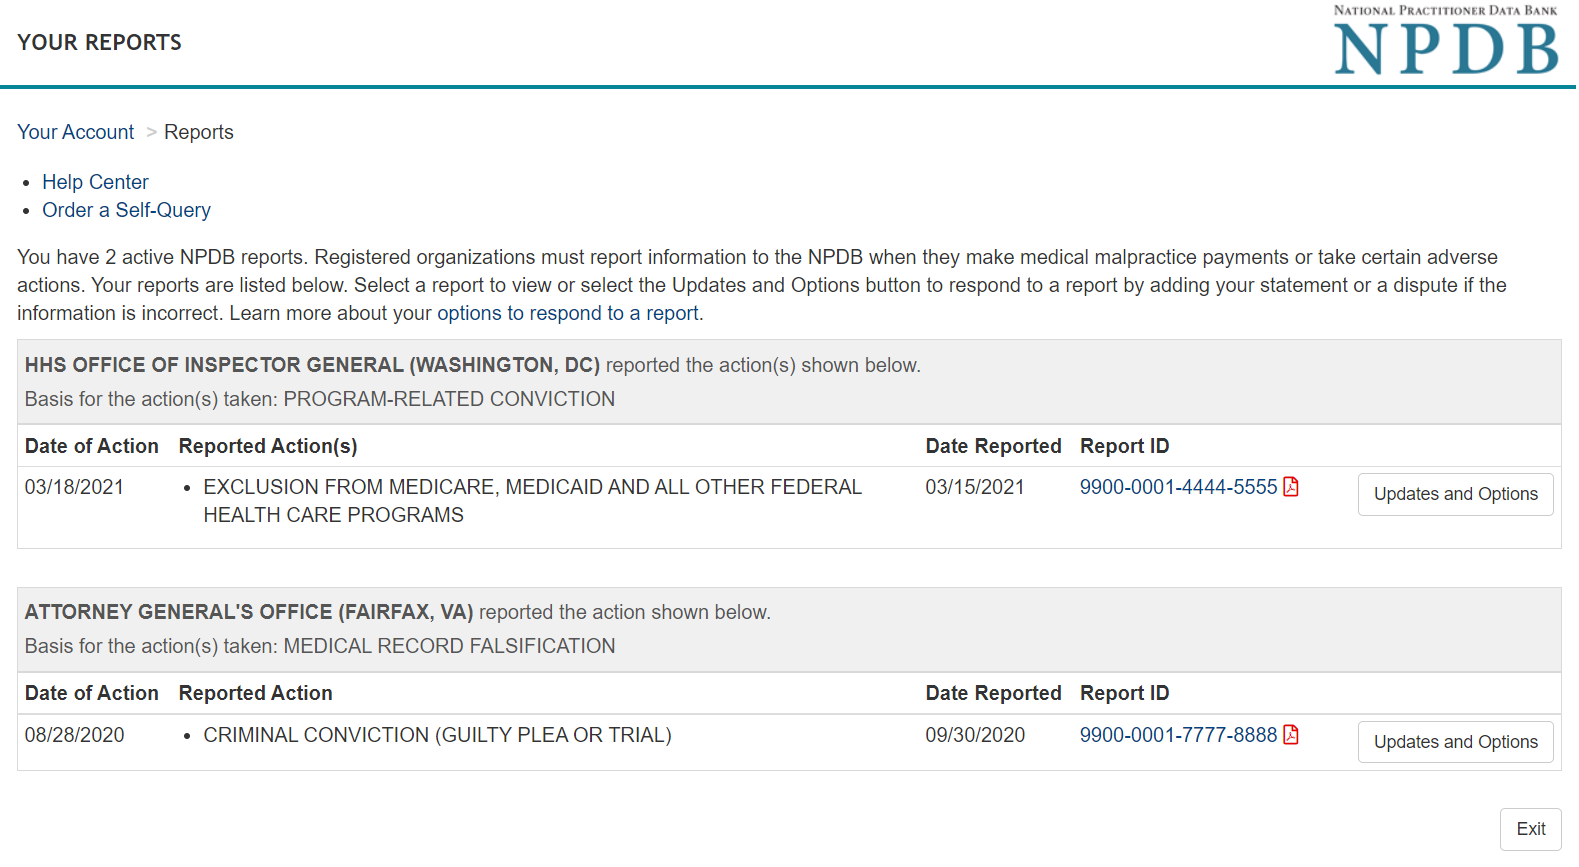 Screenshot of the Report Response Options Page